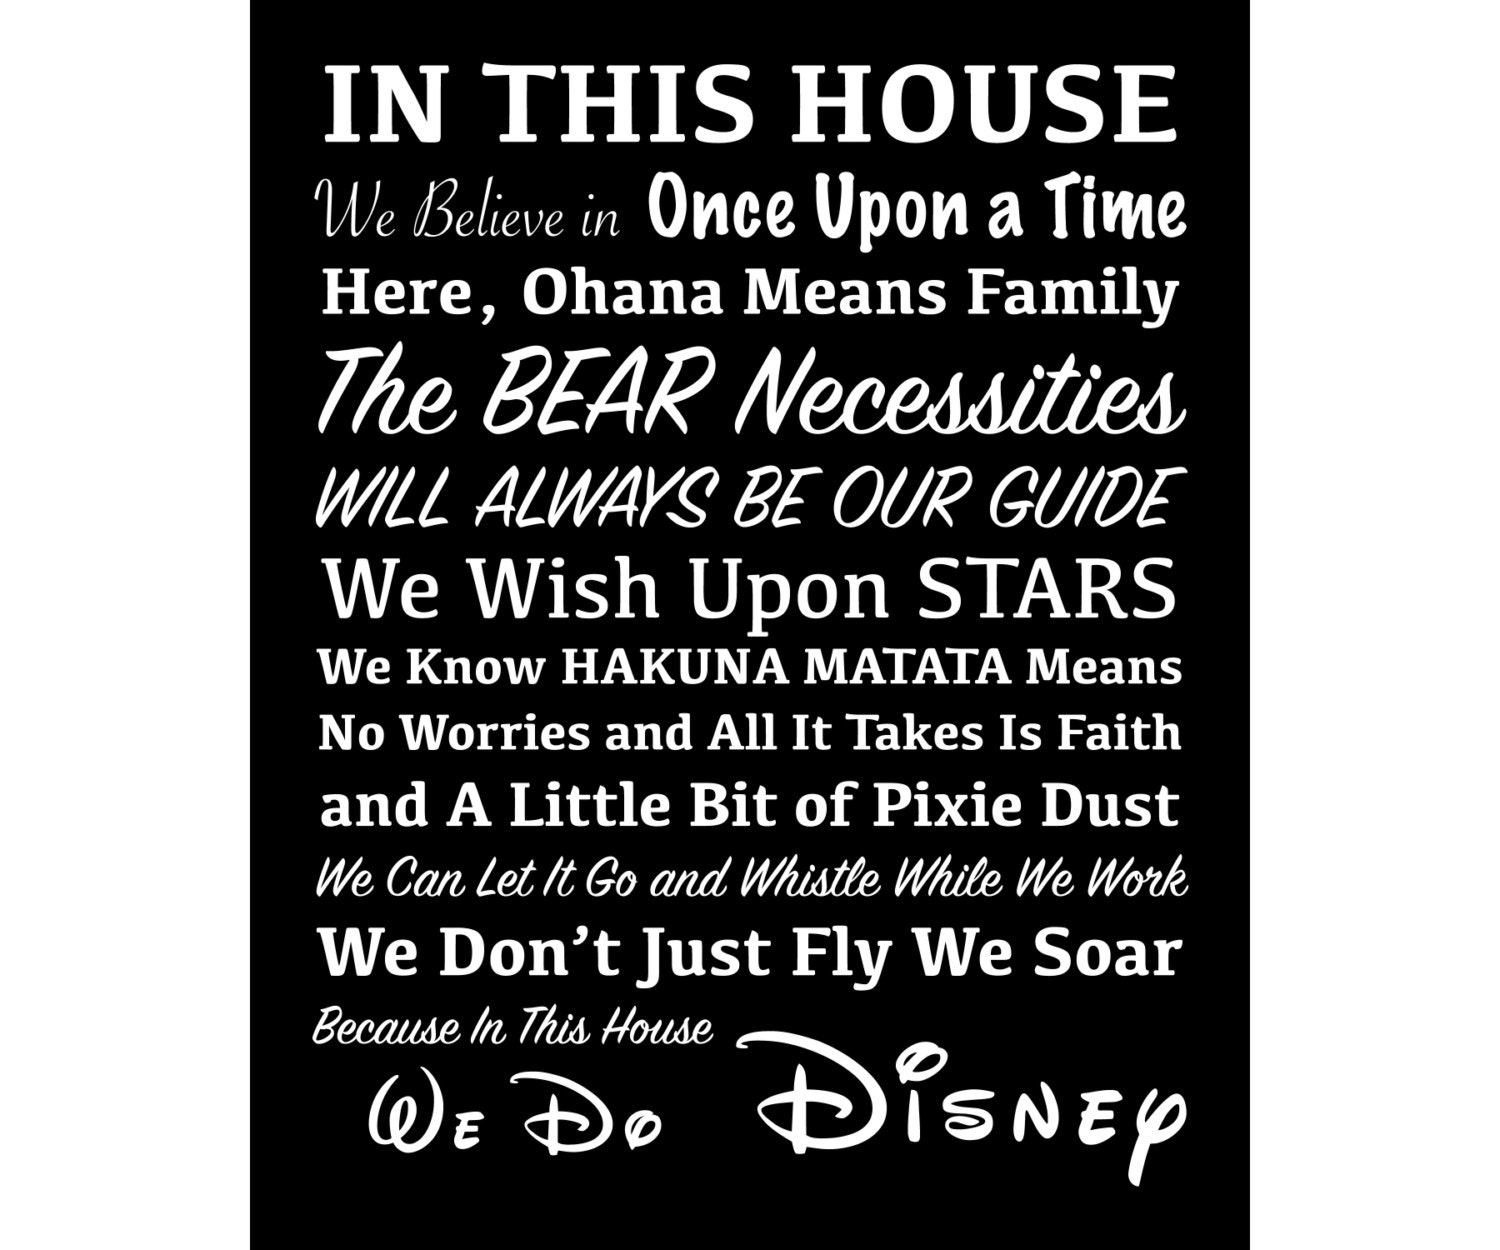 Disney Quote Plaques: In This House We Do Disney We Believe In Once Upon A Time